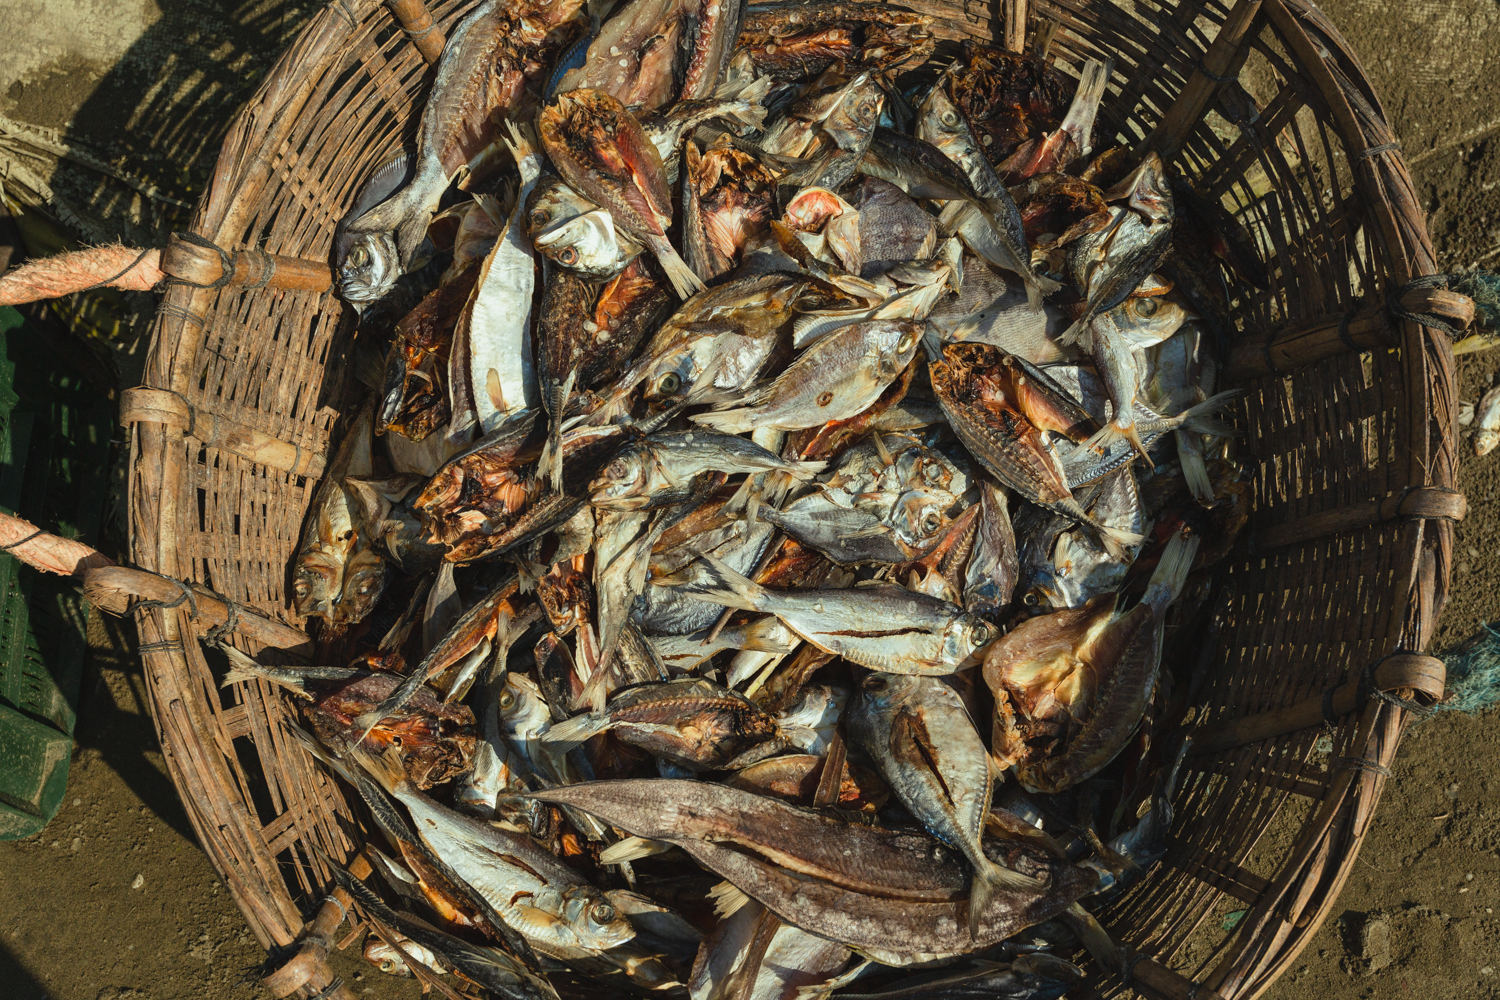 Cleaned fish prepared for the next stage of the manufacturing process at Dhaka - Bangladesh Dried Fish Village.